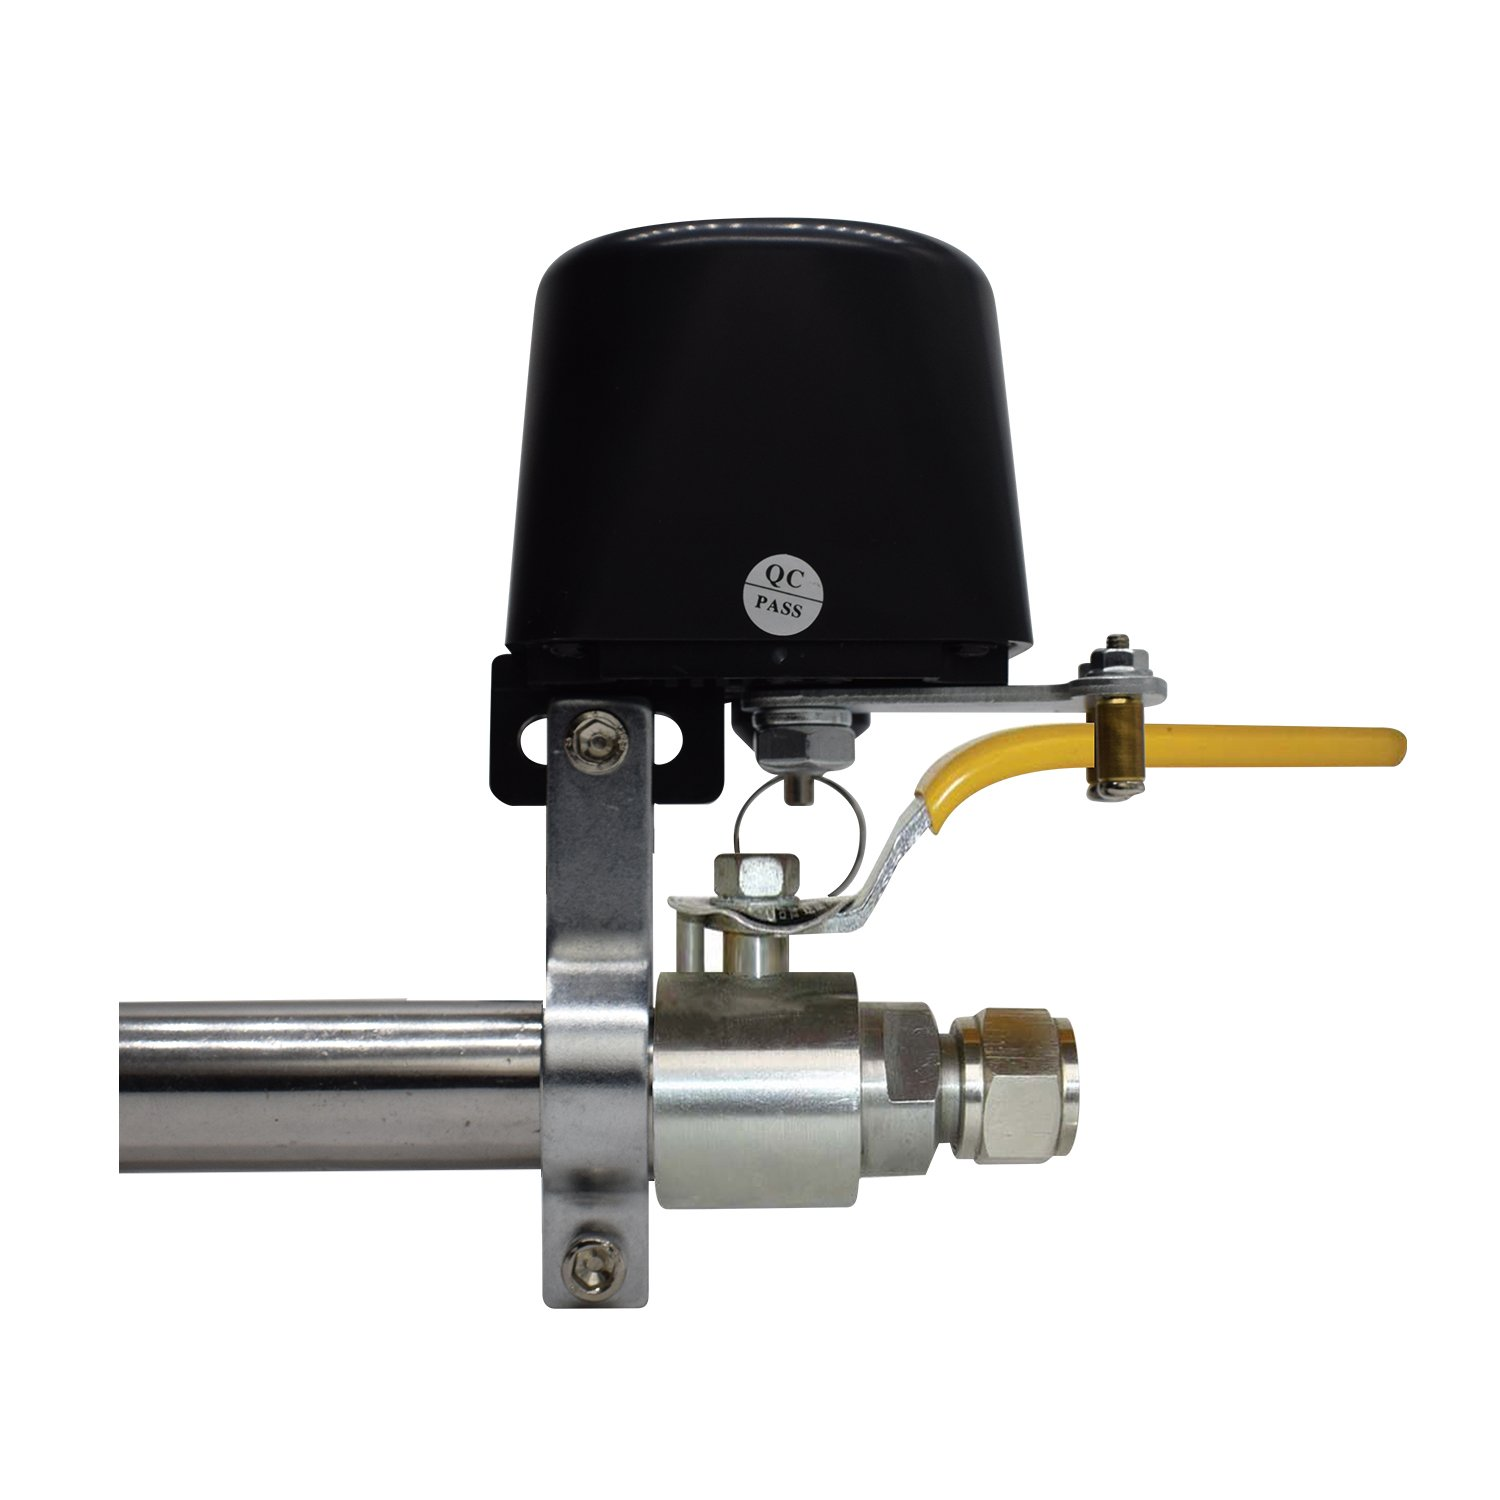 Universal Valve Lockout with Blocking Arm for Gas Detector